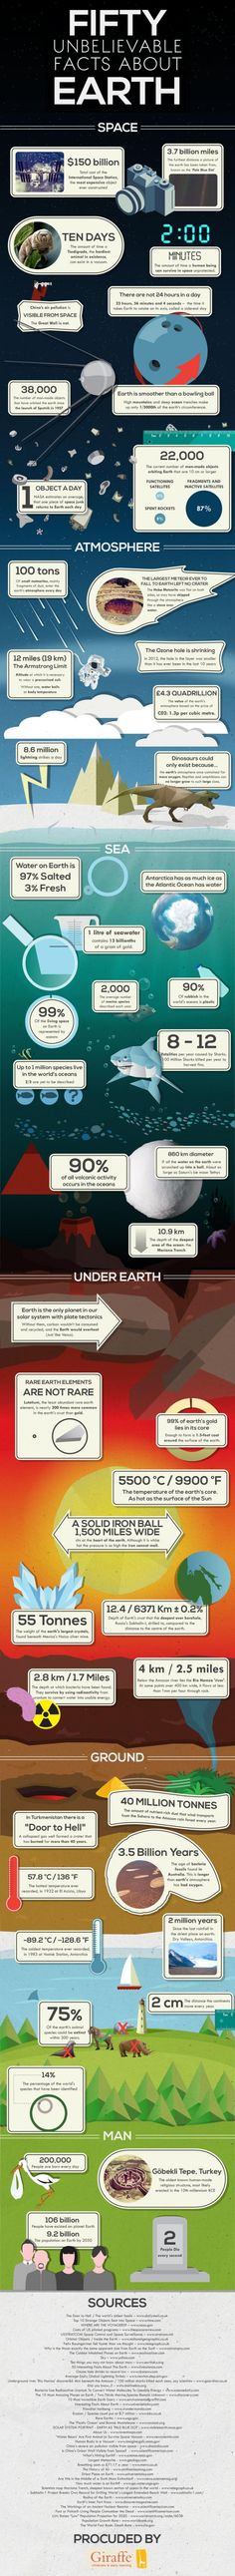 The infographic includes facts about space, the atmosphere, the sea, under earth, the ground and even man. It's a truly intriguing and interesting piece. Source http://www.giraffe.ie/blog/50-facts-about-earth